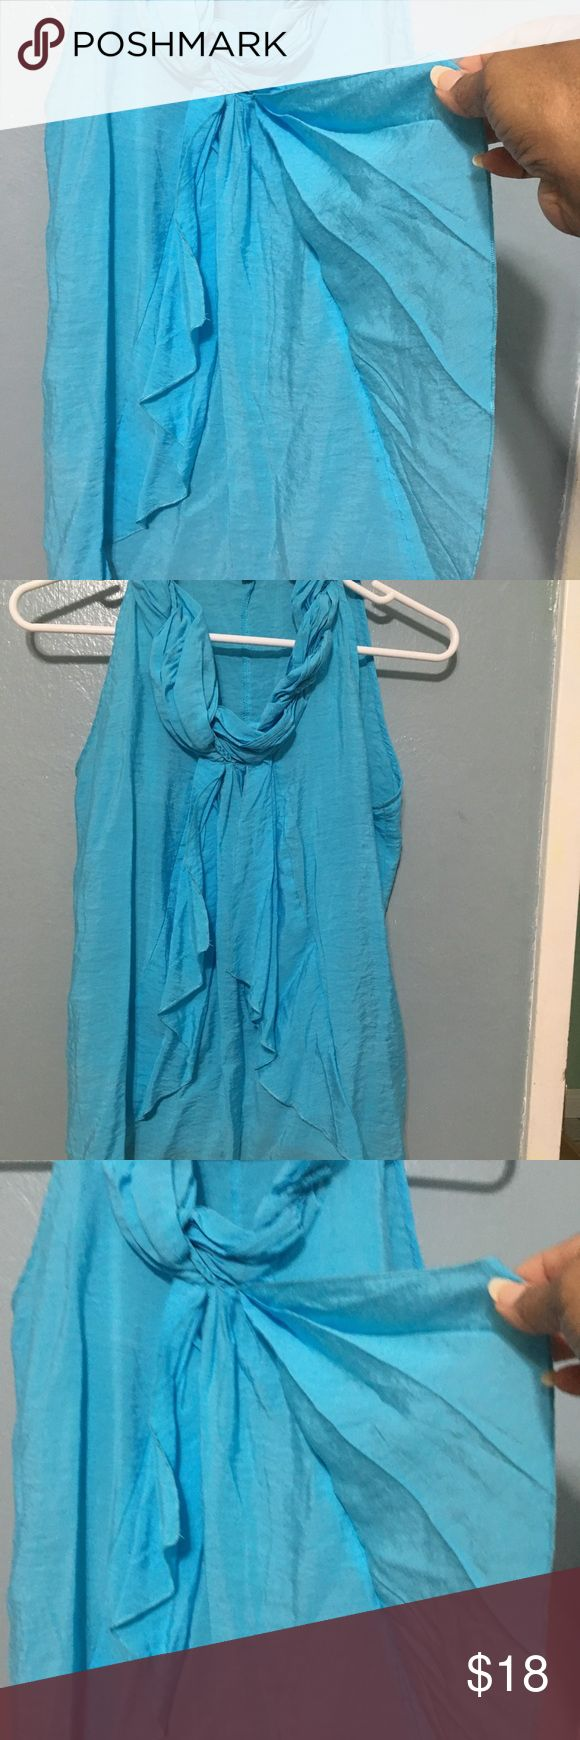 Milano blouse Milano top, light blue color, it has the braided neck and flights in front, perfect if you have small bust, M size, rayon fabric and nylon Milano Tops Tank Tops